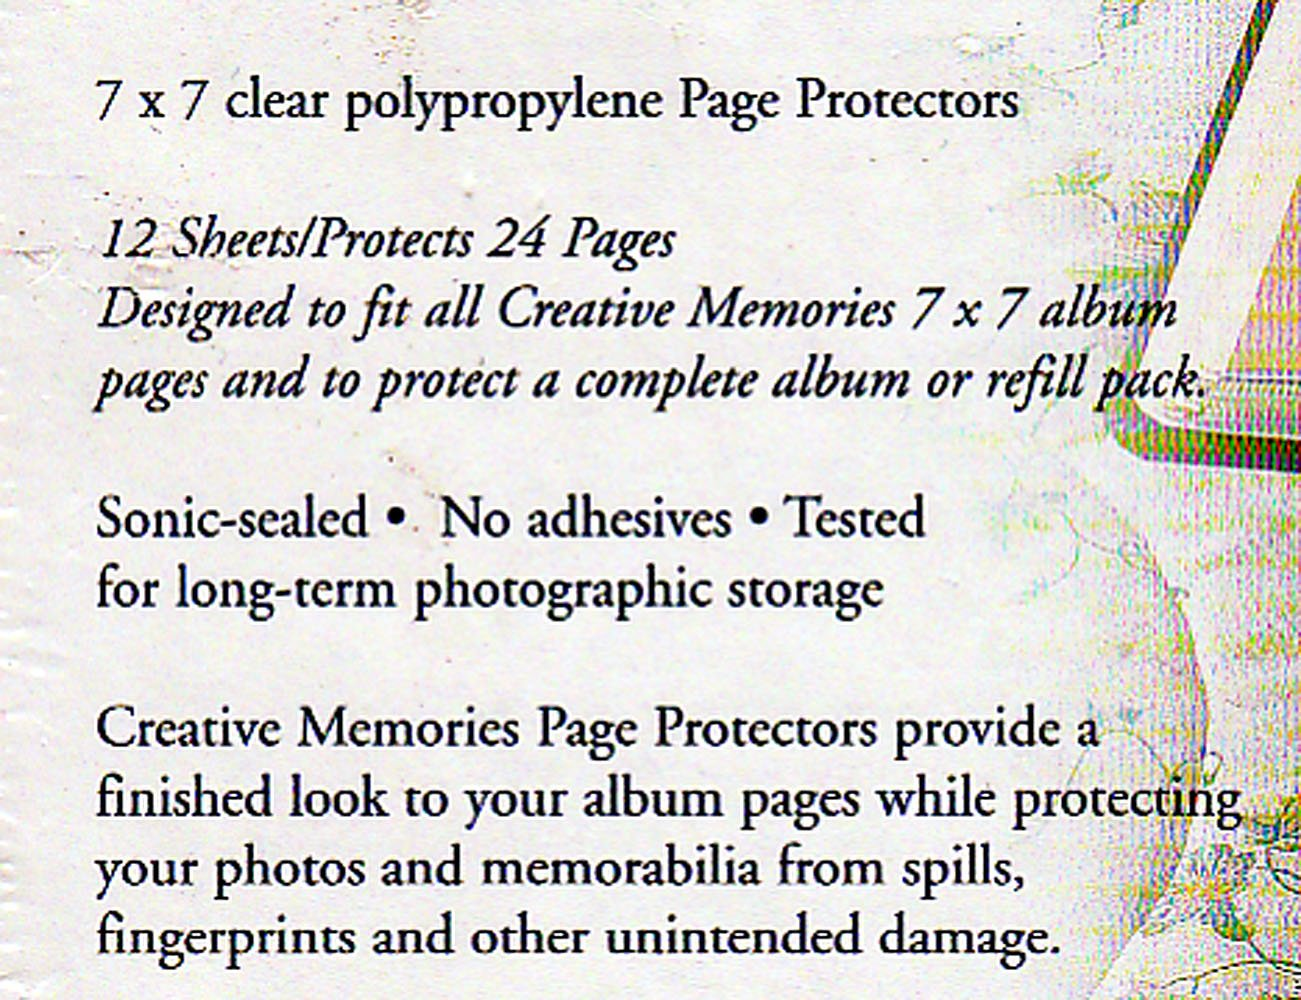 How to scrapbook without page protectors - How To Scrapbook Without Page Protectors 40